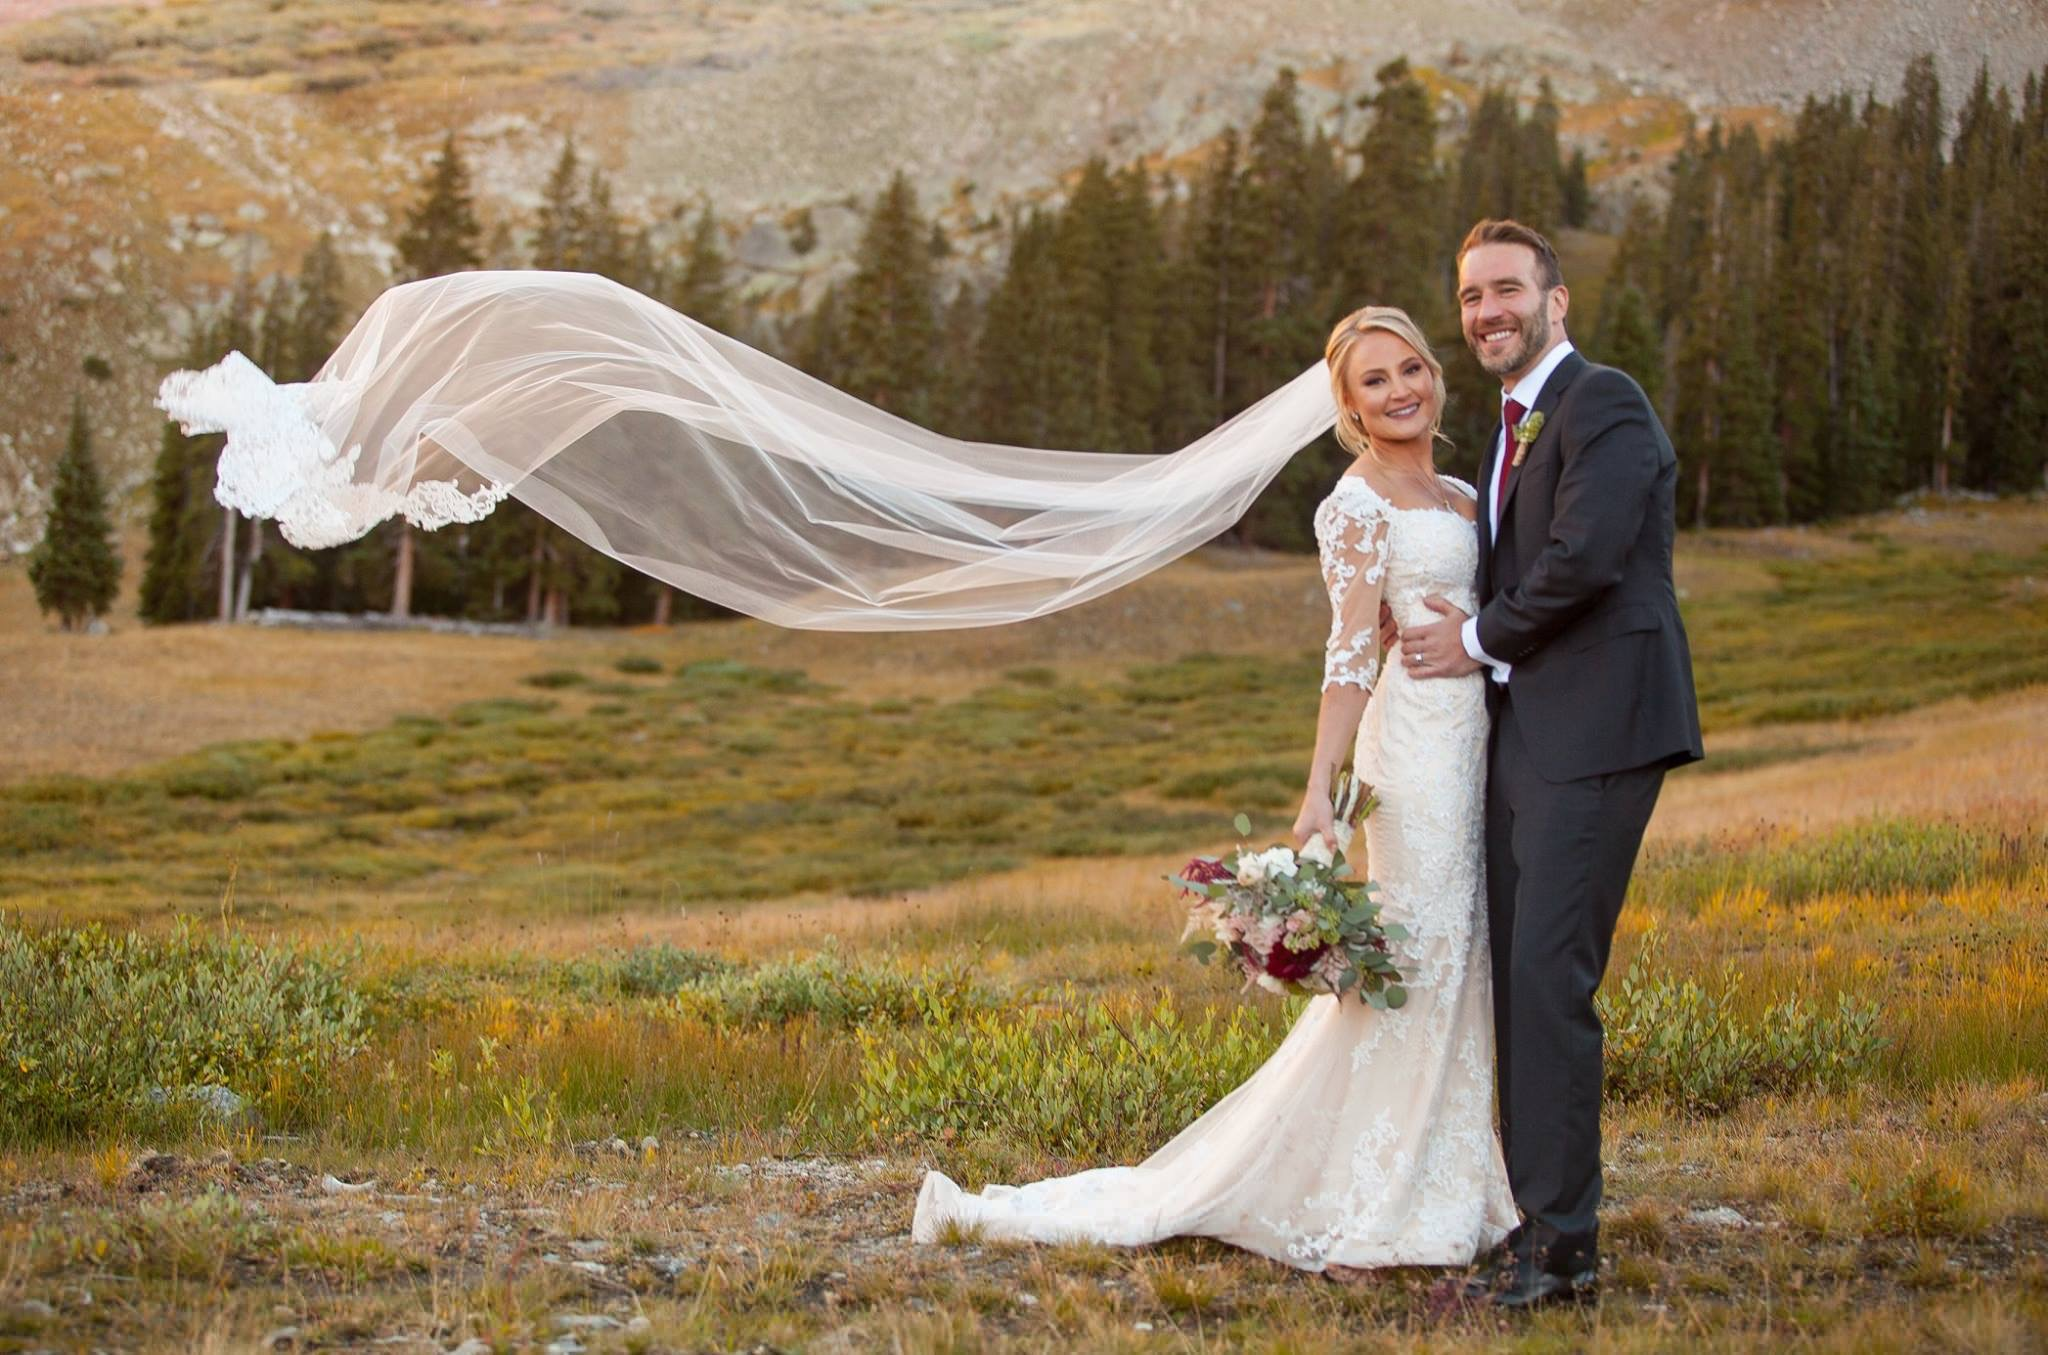 Ashleigh | 9/2/2016 | Vail, Colorado |   Caroline Colvin Photography